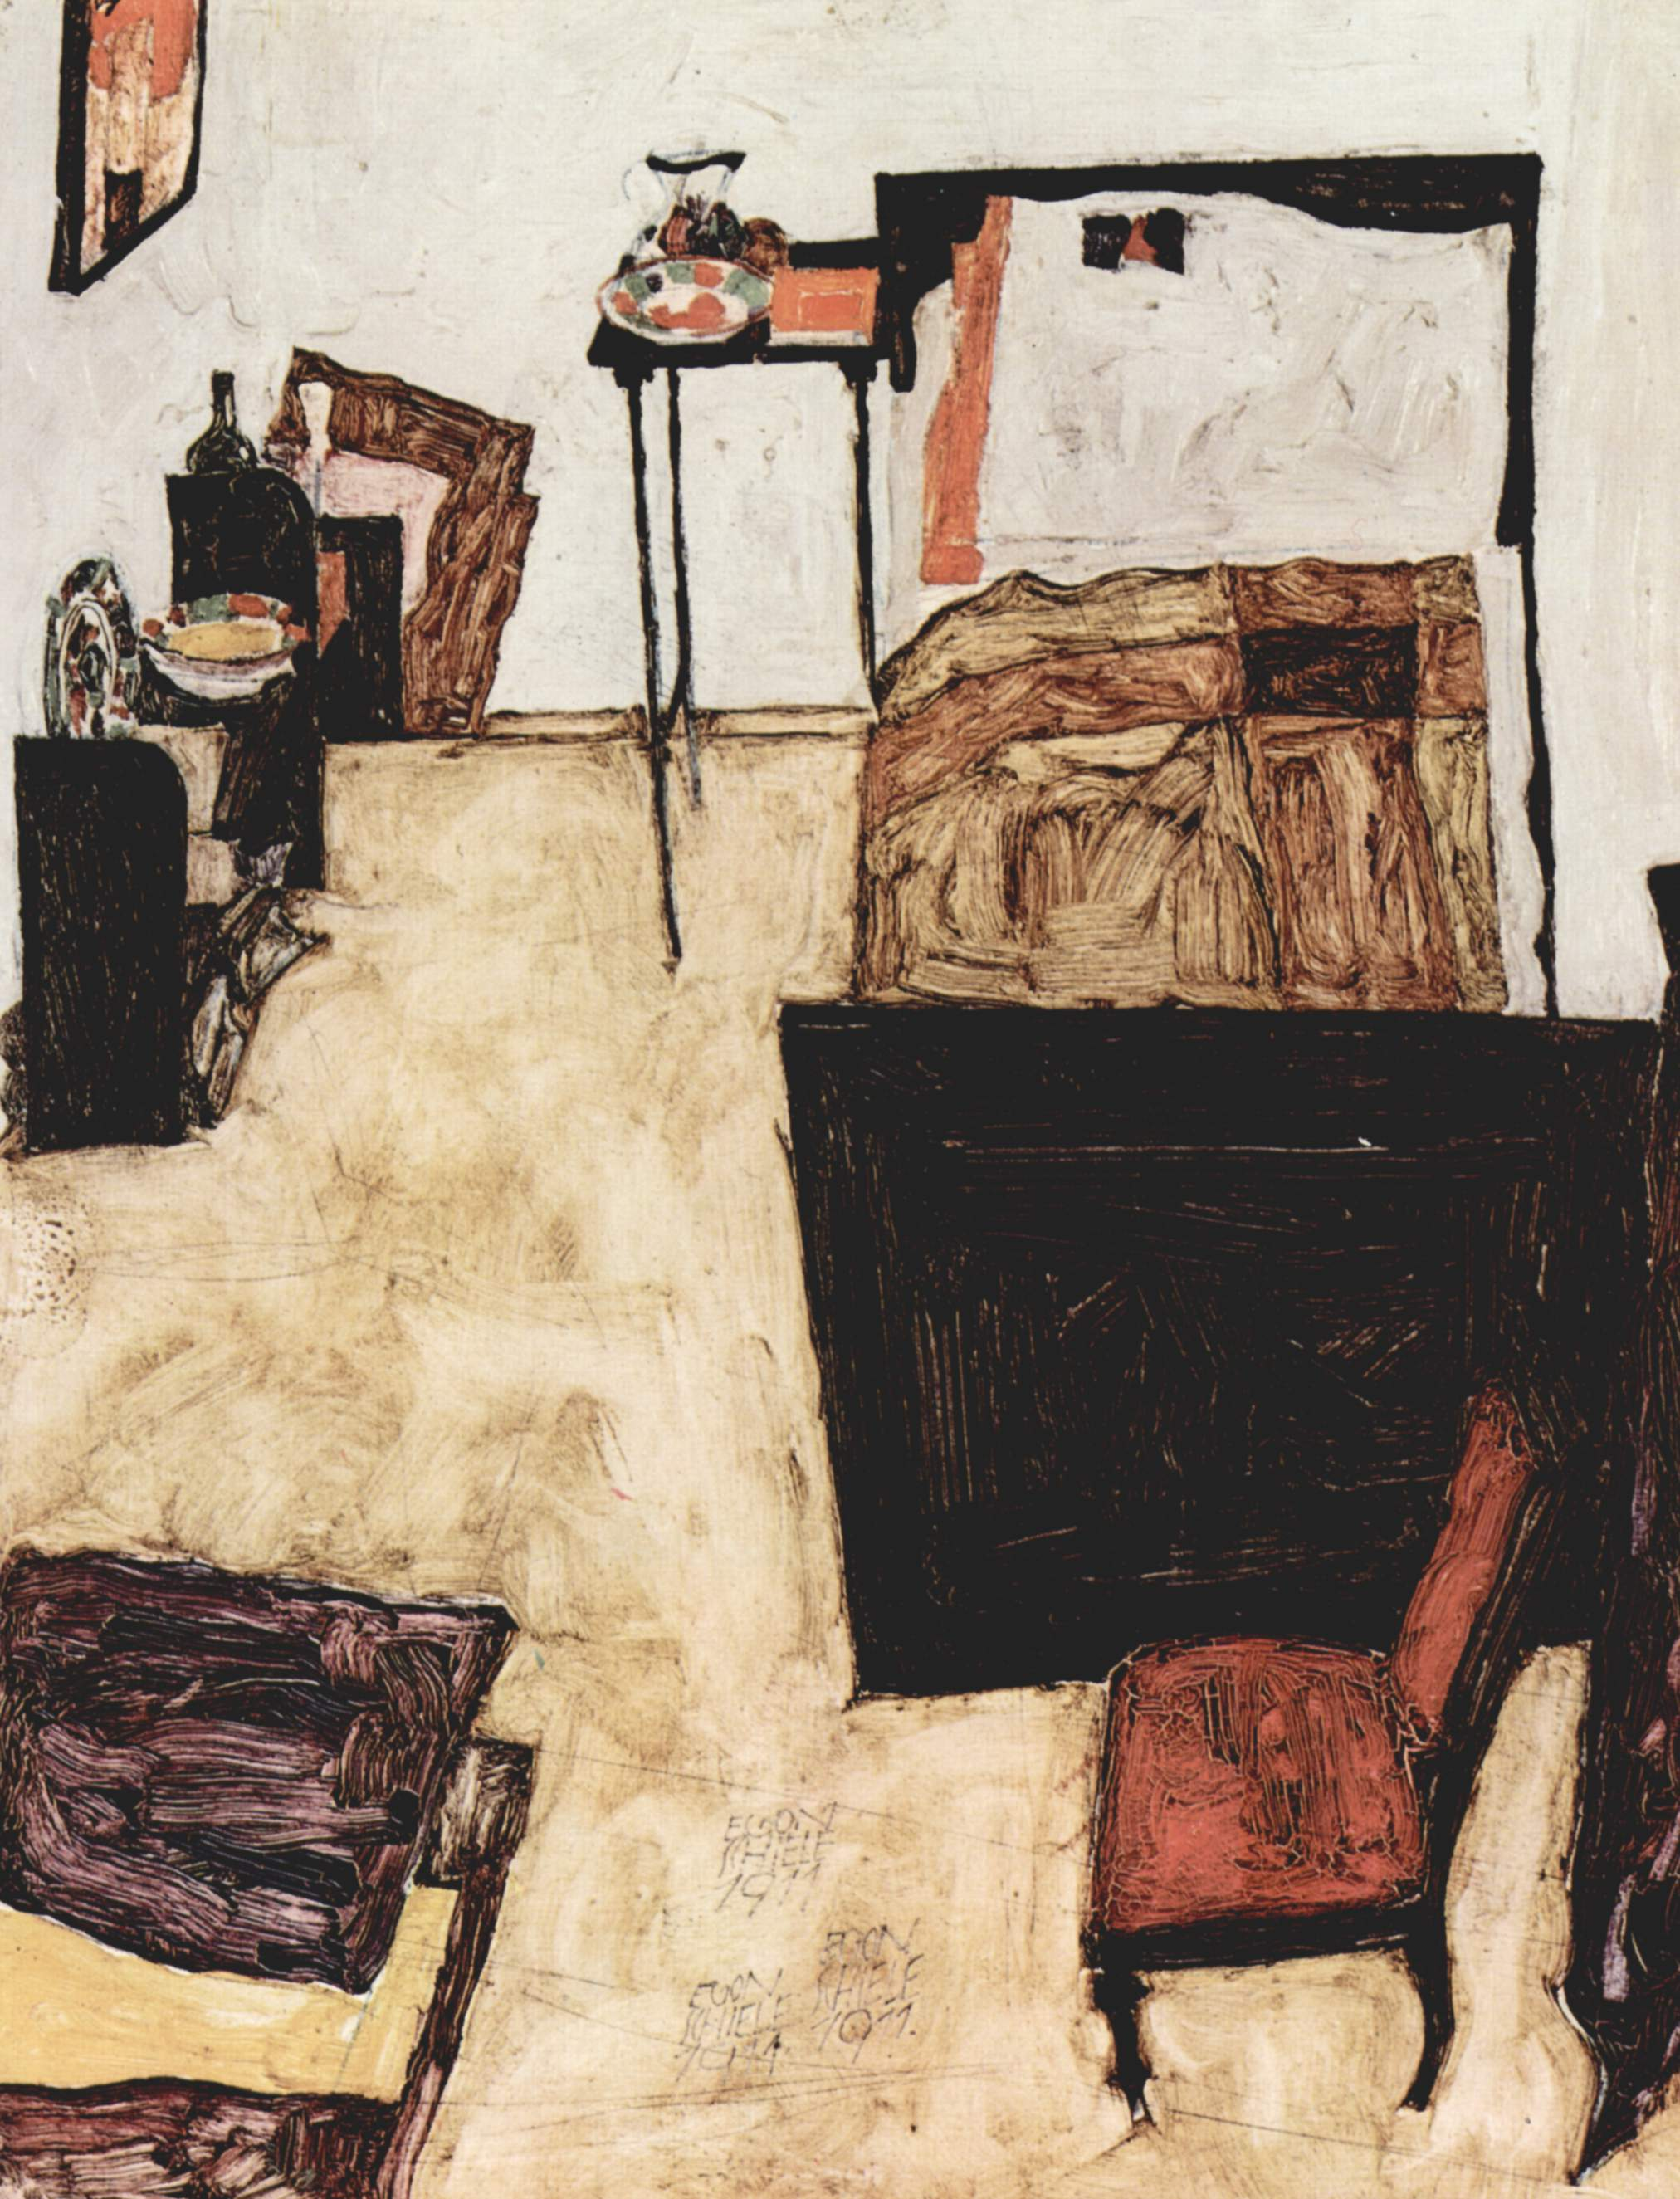 https://i0.wp.com/upload.wikimedia.org/wikipedia/commons/4/42/Egon_Schiele_070.jpg